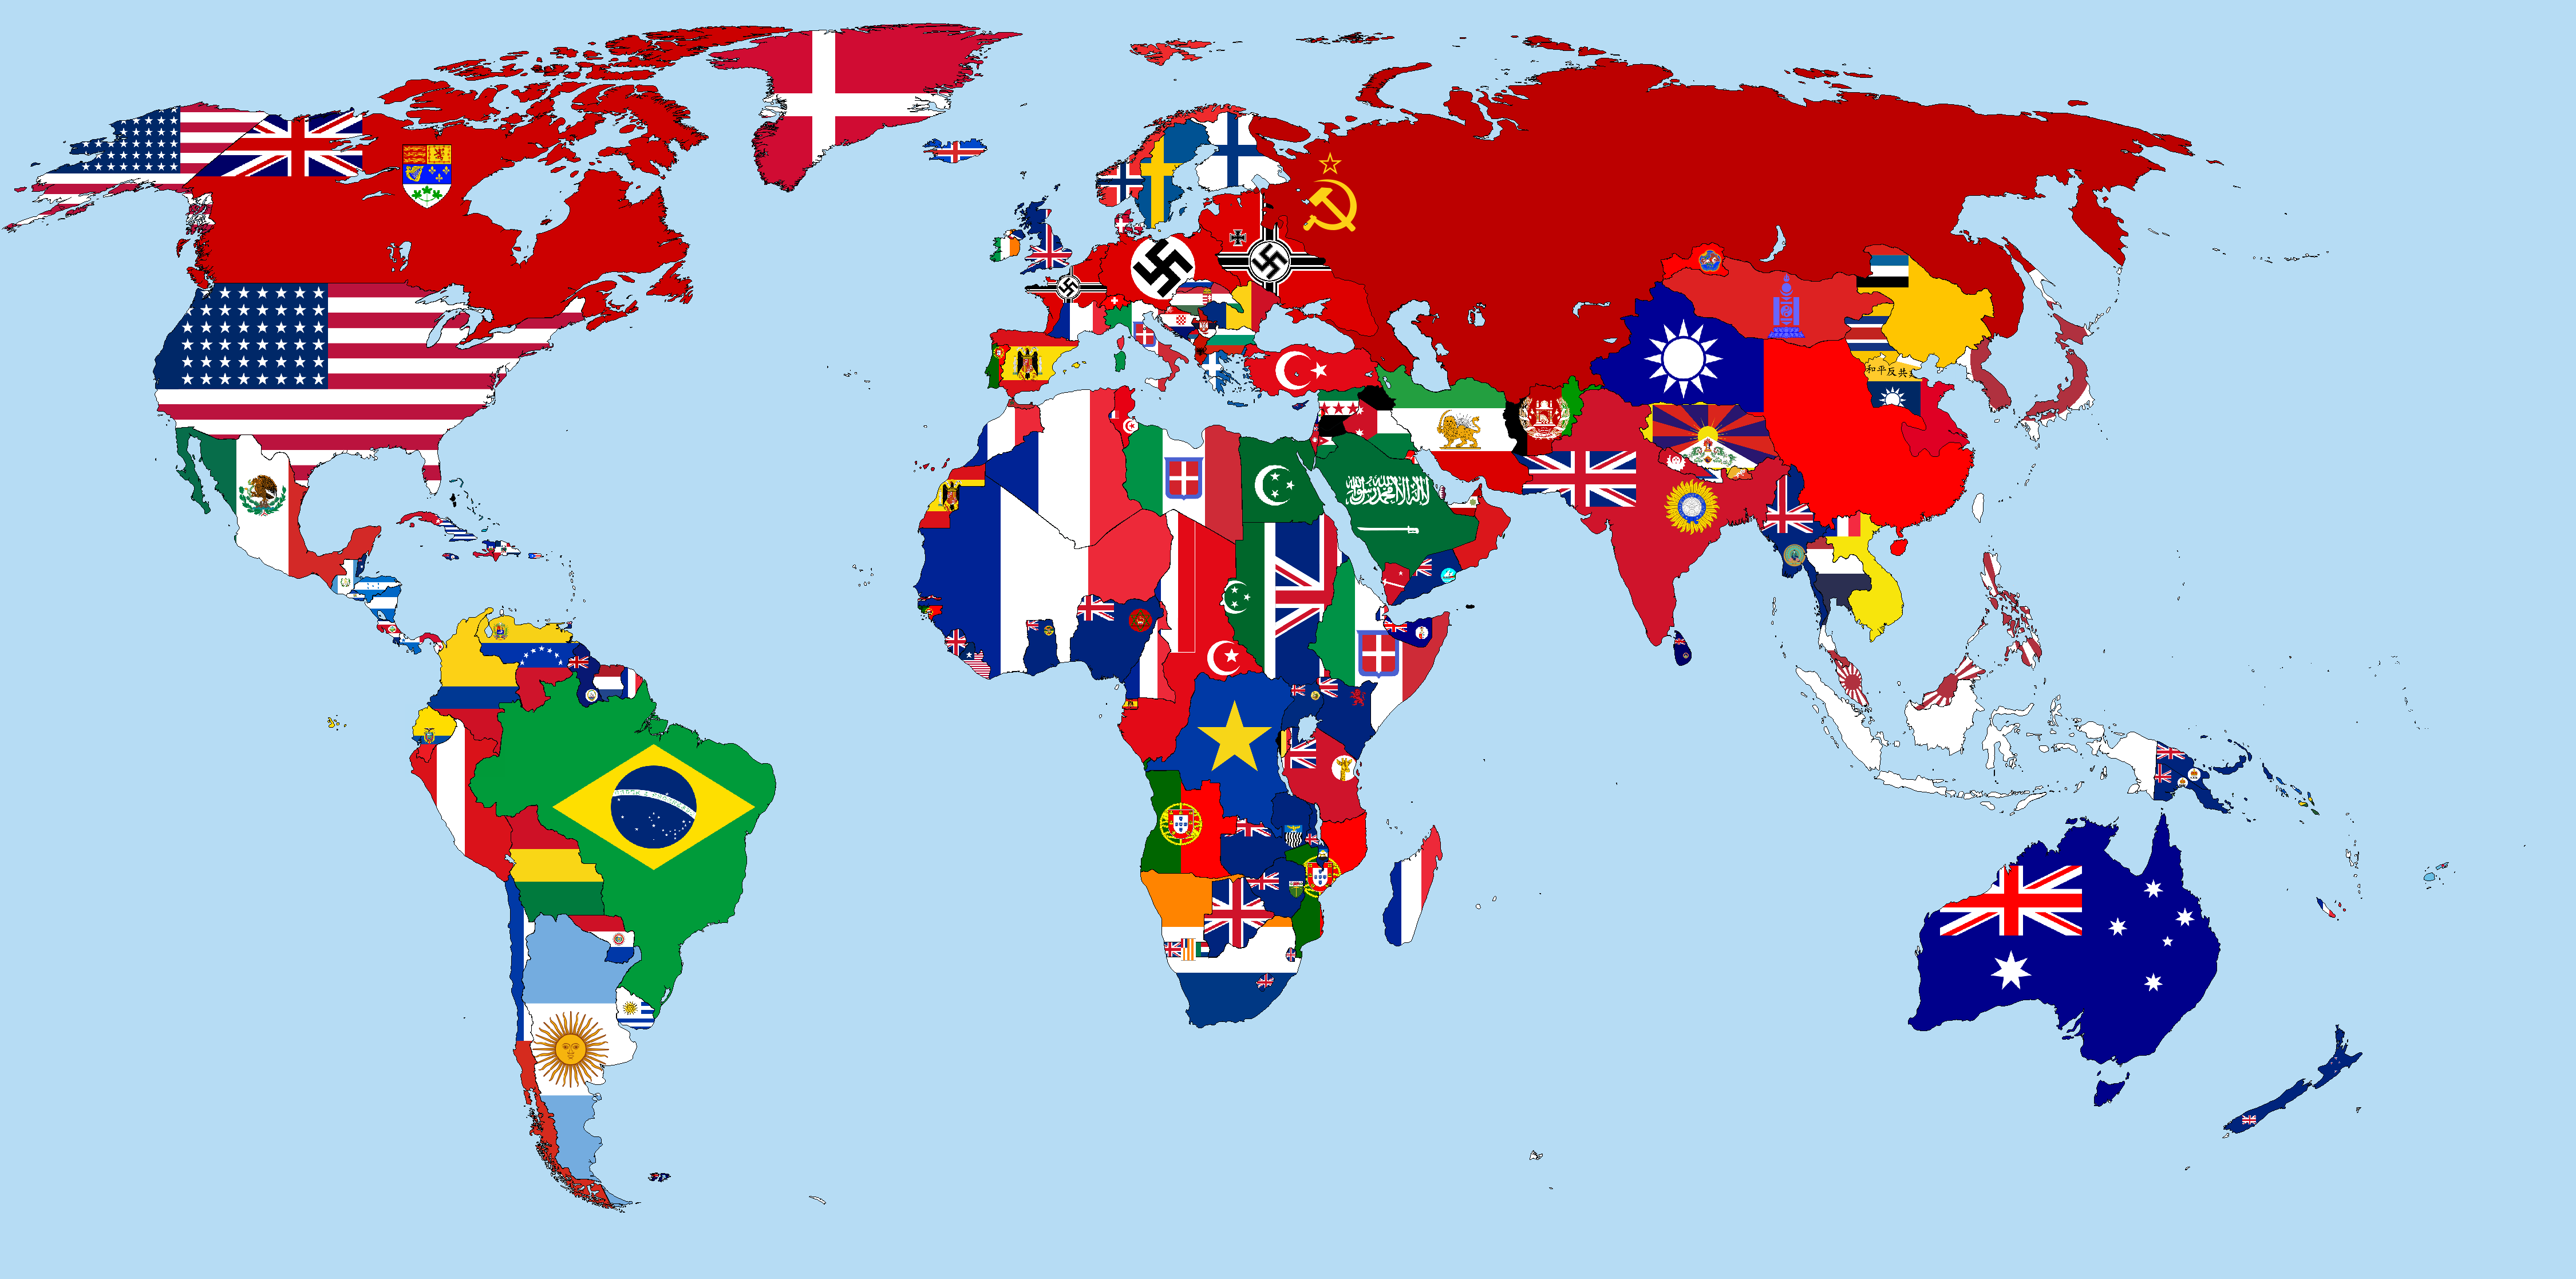 Flag map of the world 1942 maps pinterest explore world maps world map quiz and more gumiabroncs Gallery